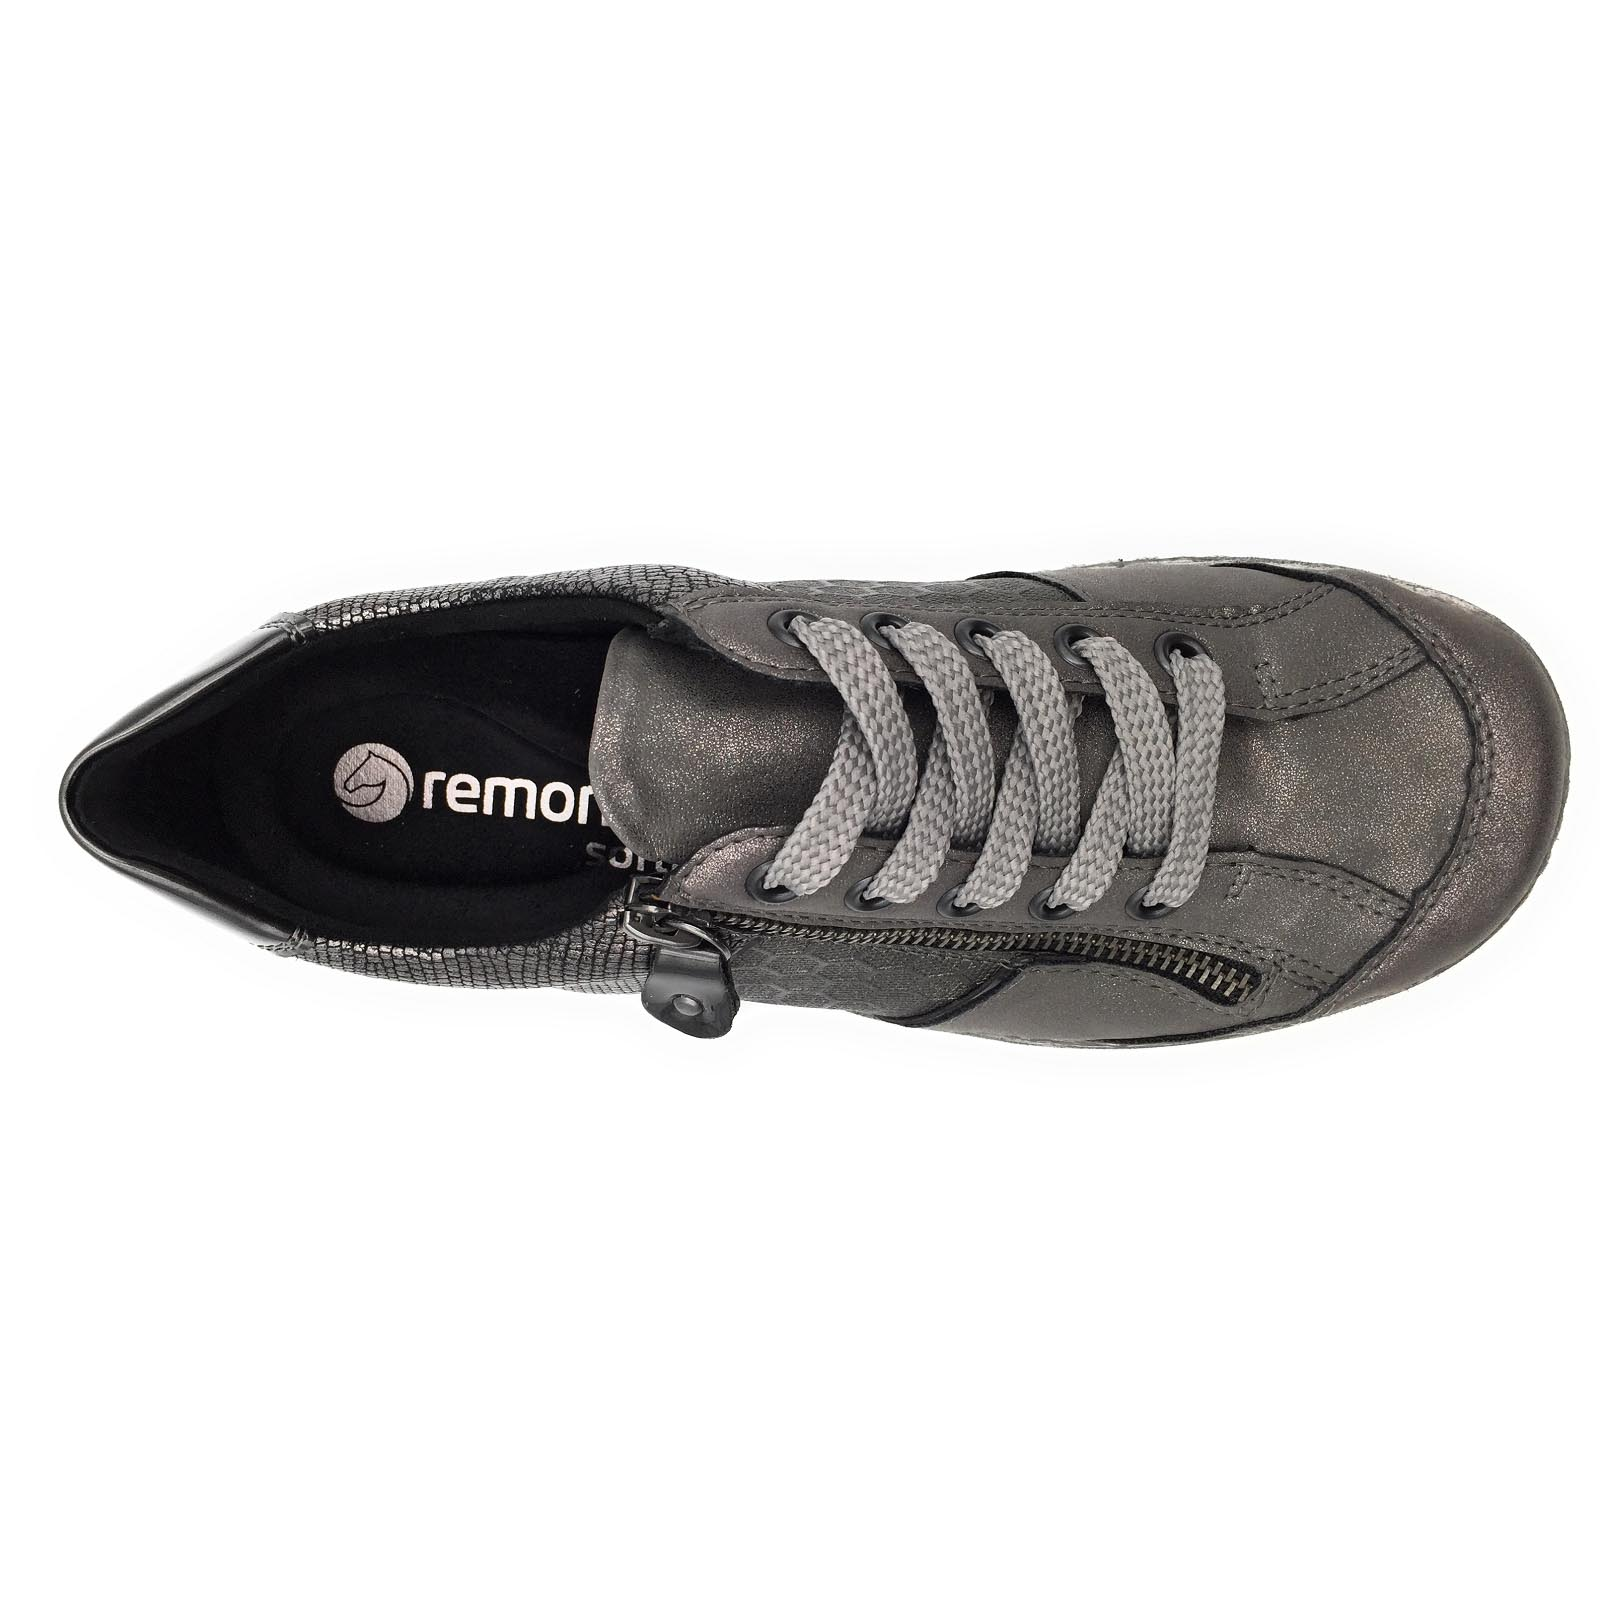 Remonte baskets mode r1414 gris8051803_5